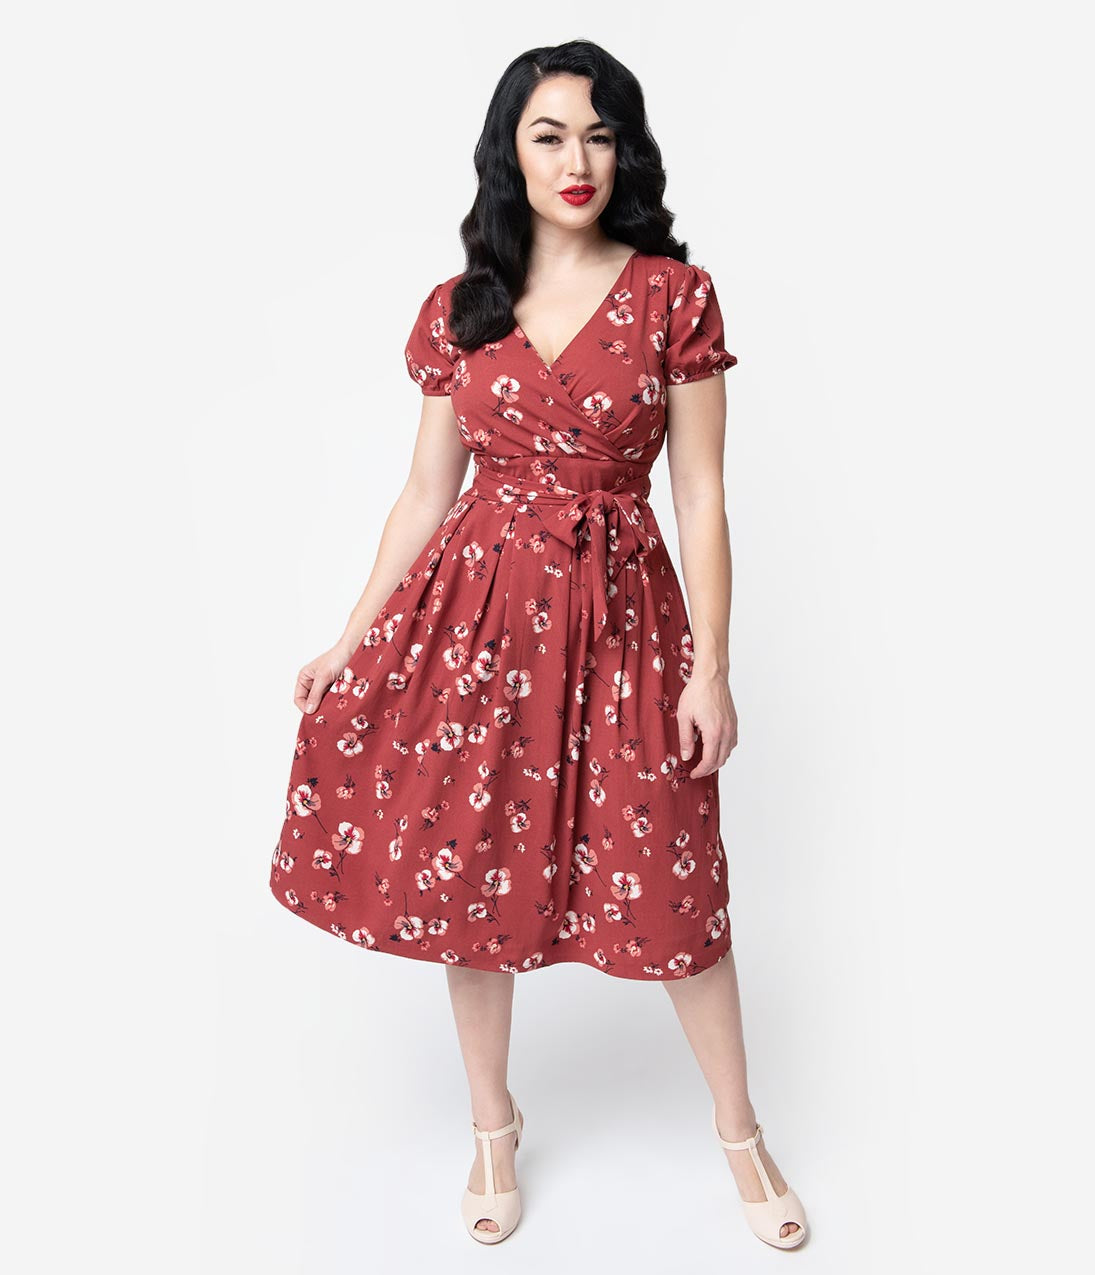 Vintage Tea Dresses, Floral Tea Dresses, Tea Length Dresses 1940S Style Dark Pink Floral Short Sleeve Katelyn Midi Dress $68.00 AT vintagedancer.com